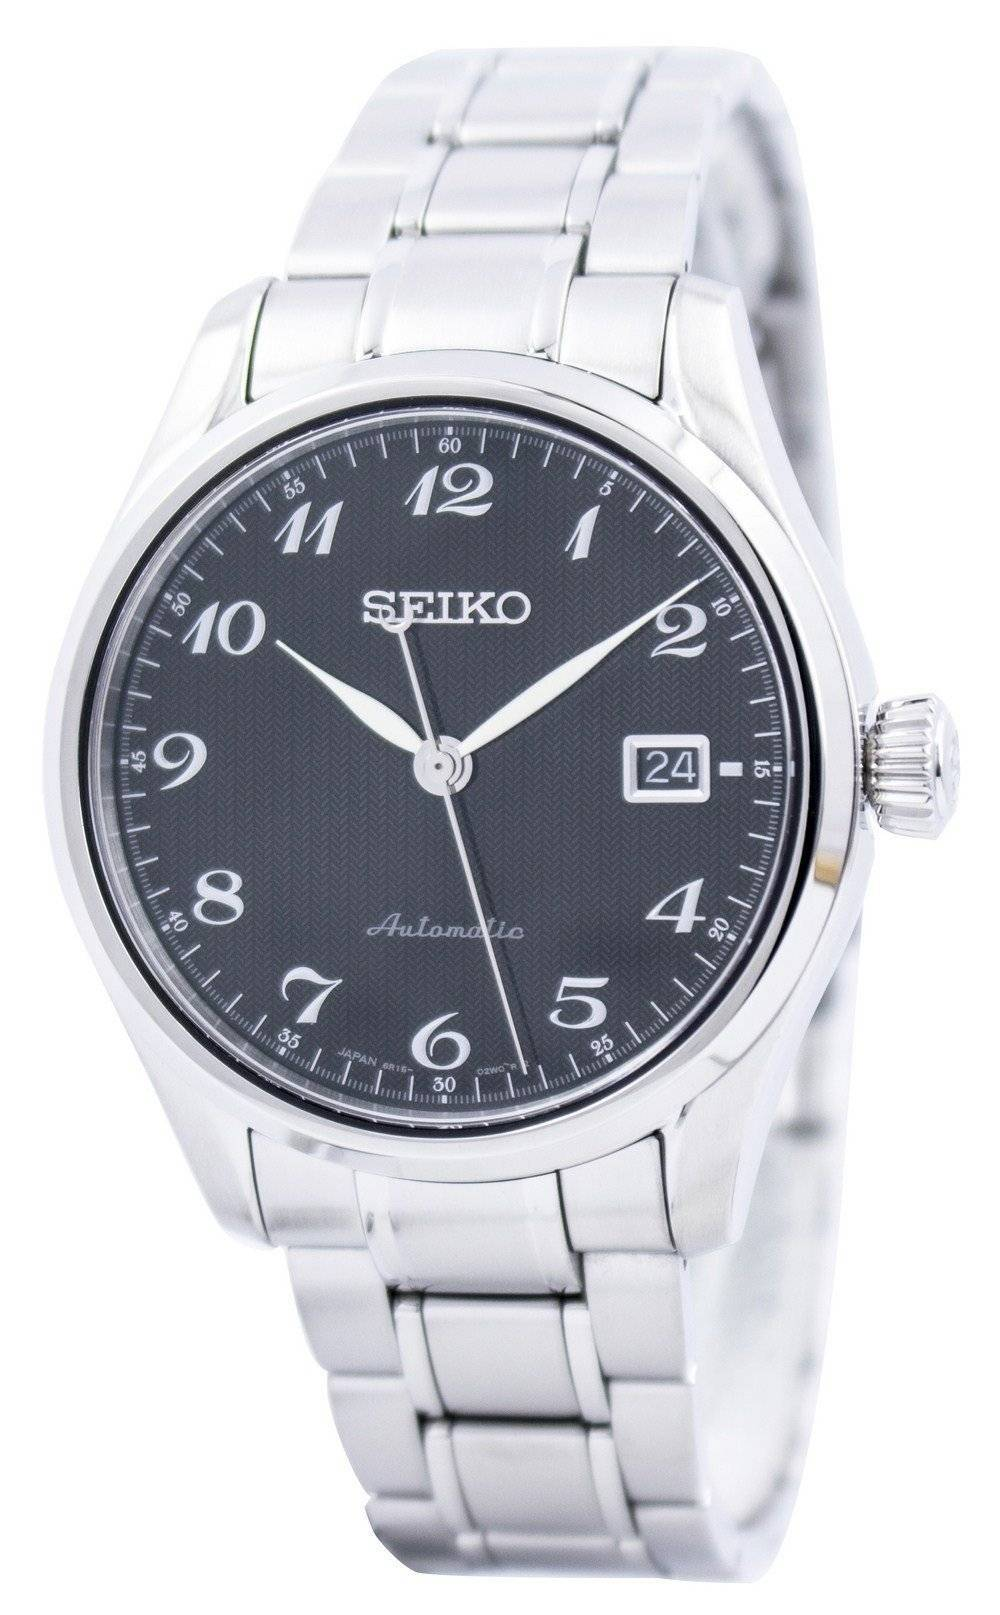 97ccad9557c Seiko Presage Automatic Japan Made SPB037 SPB037J1 SPB037J Men s Watch